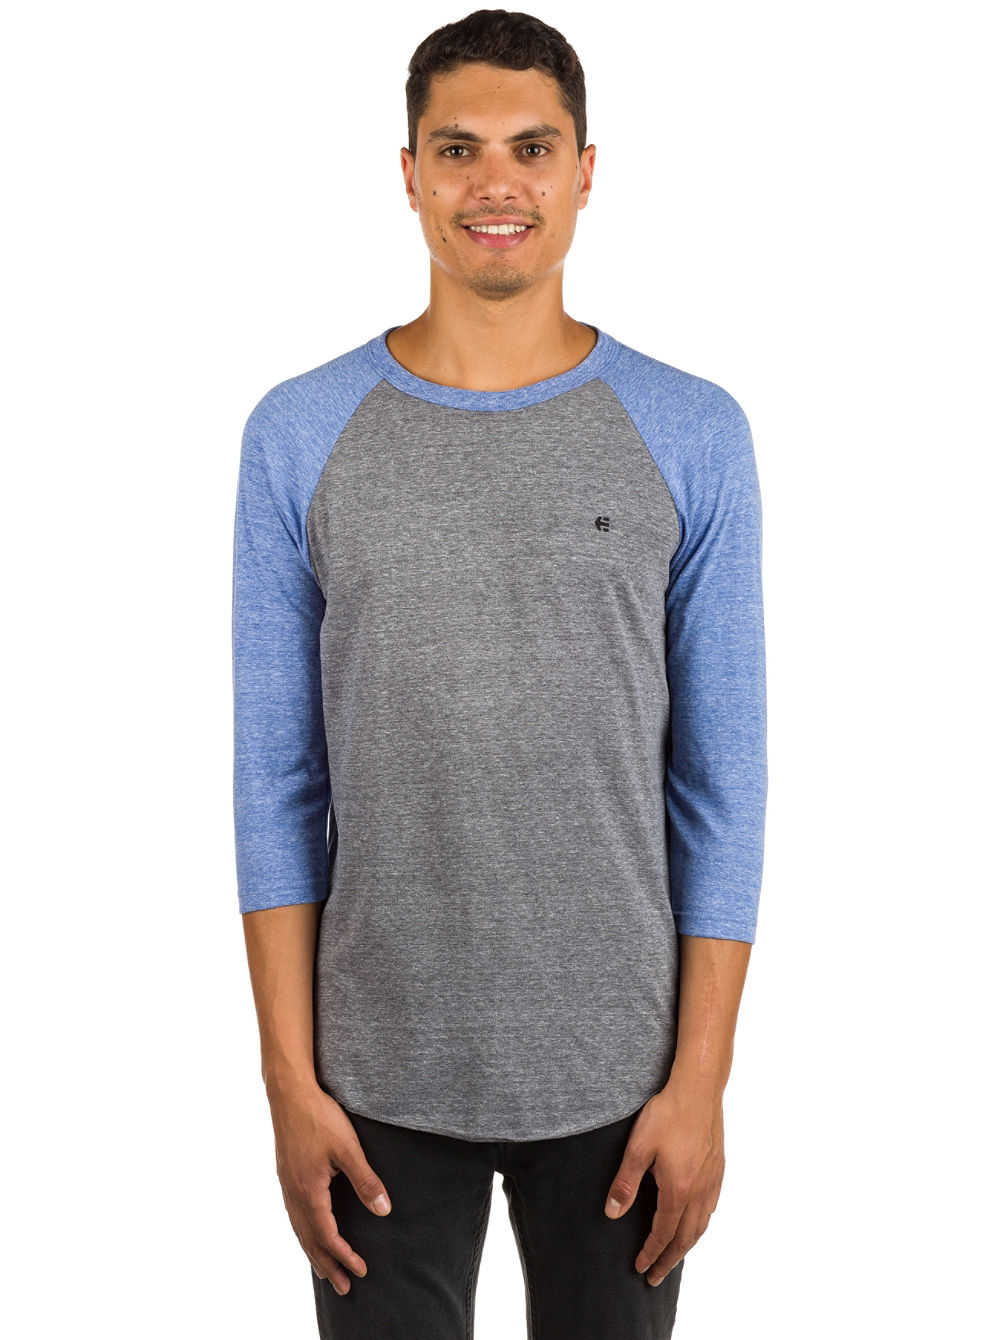 Lead Off Raglan T-Shirt